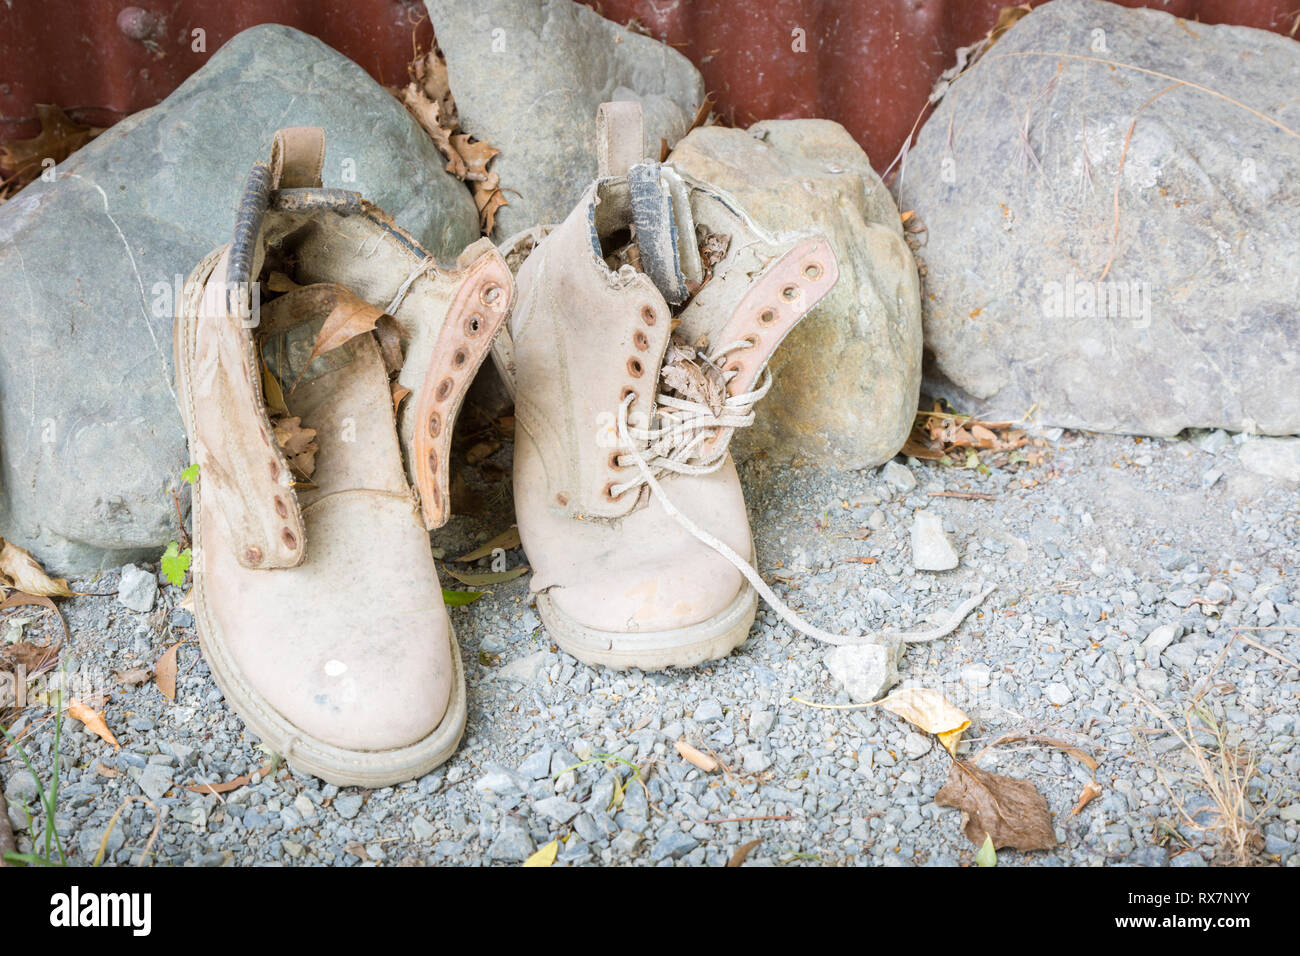 Pair of old work boots - Stock Image